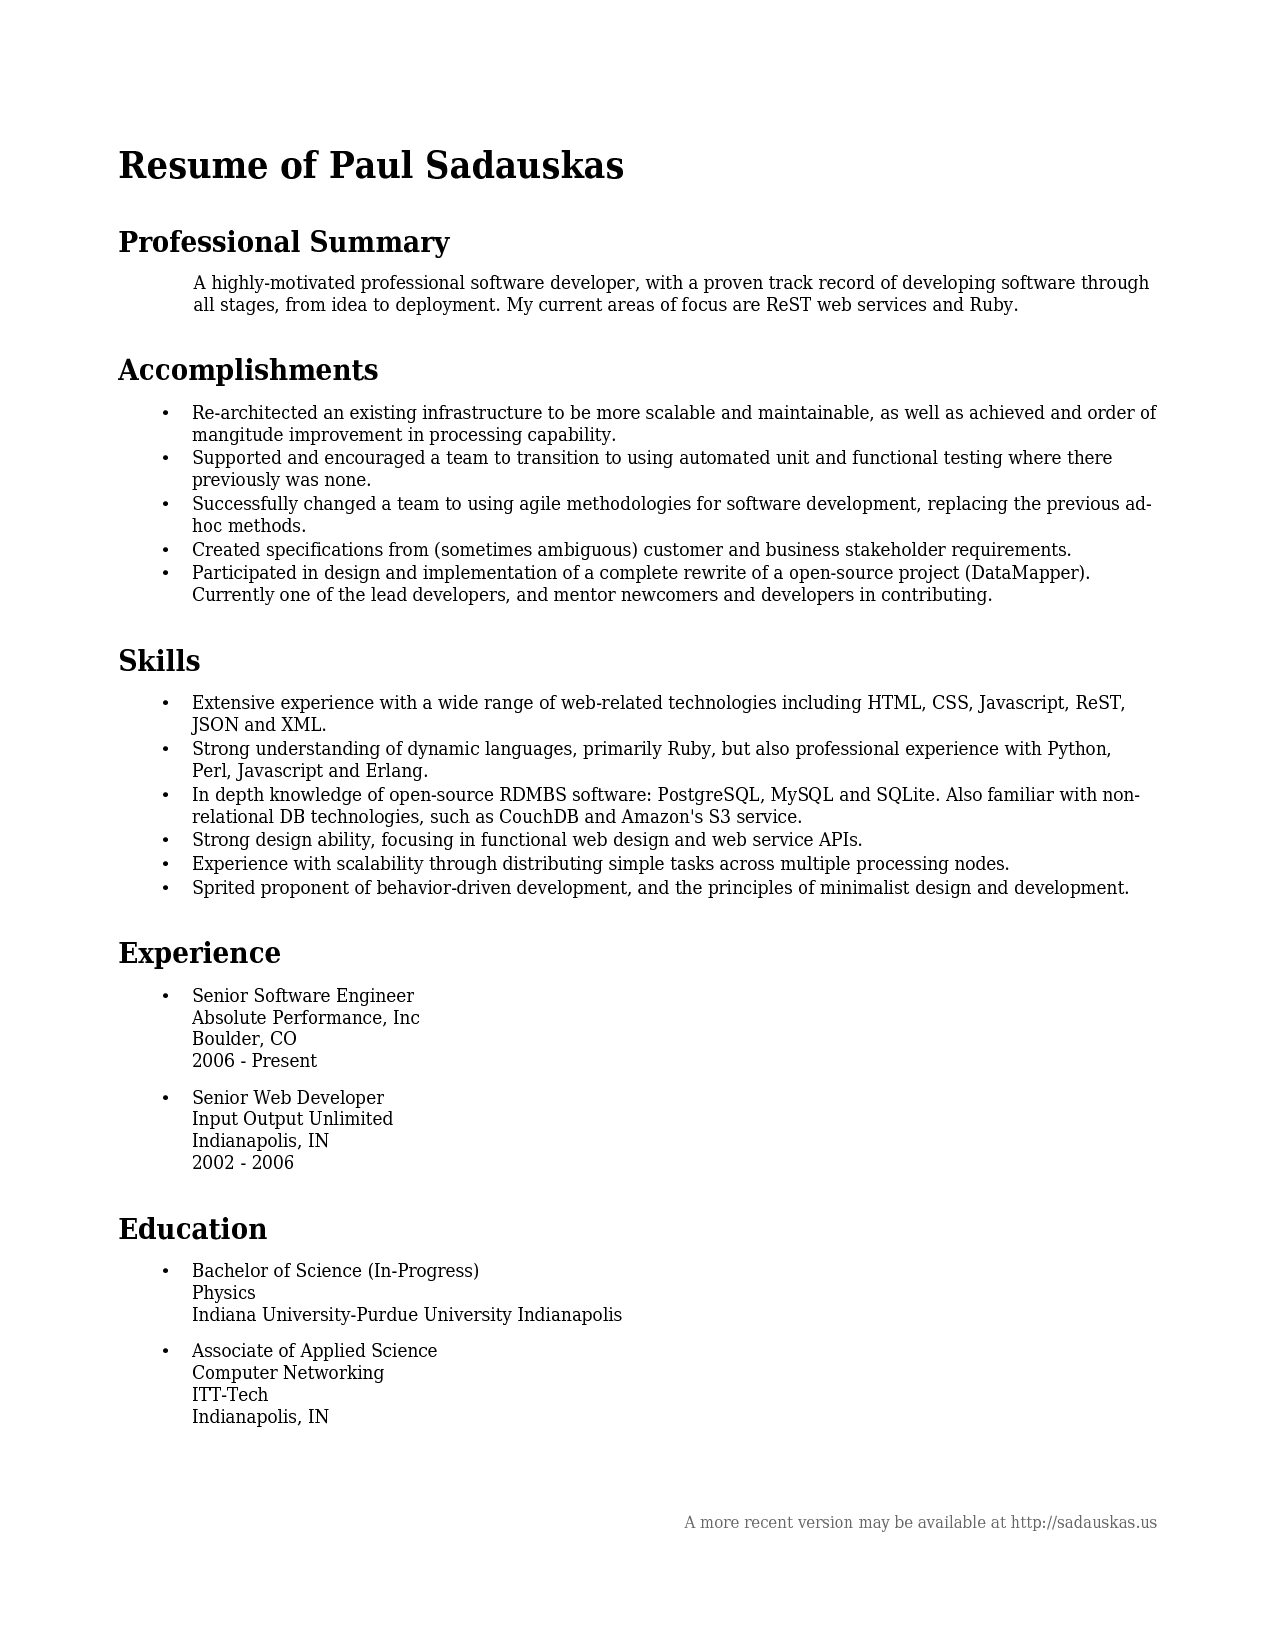 Nice Professional Summary Examples Example Of Professional Summary On Resume  Paul Sadauskas Intended For Examples Of Professional Summary For Resume